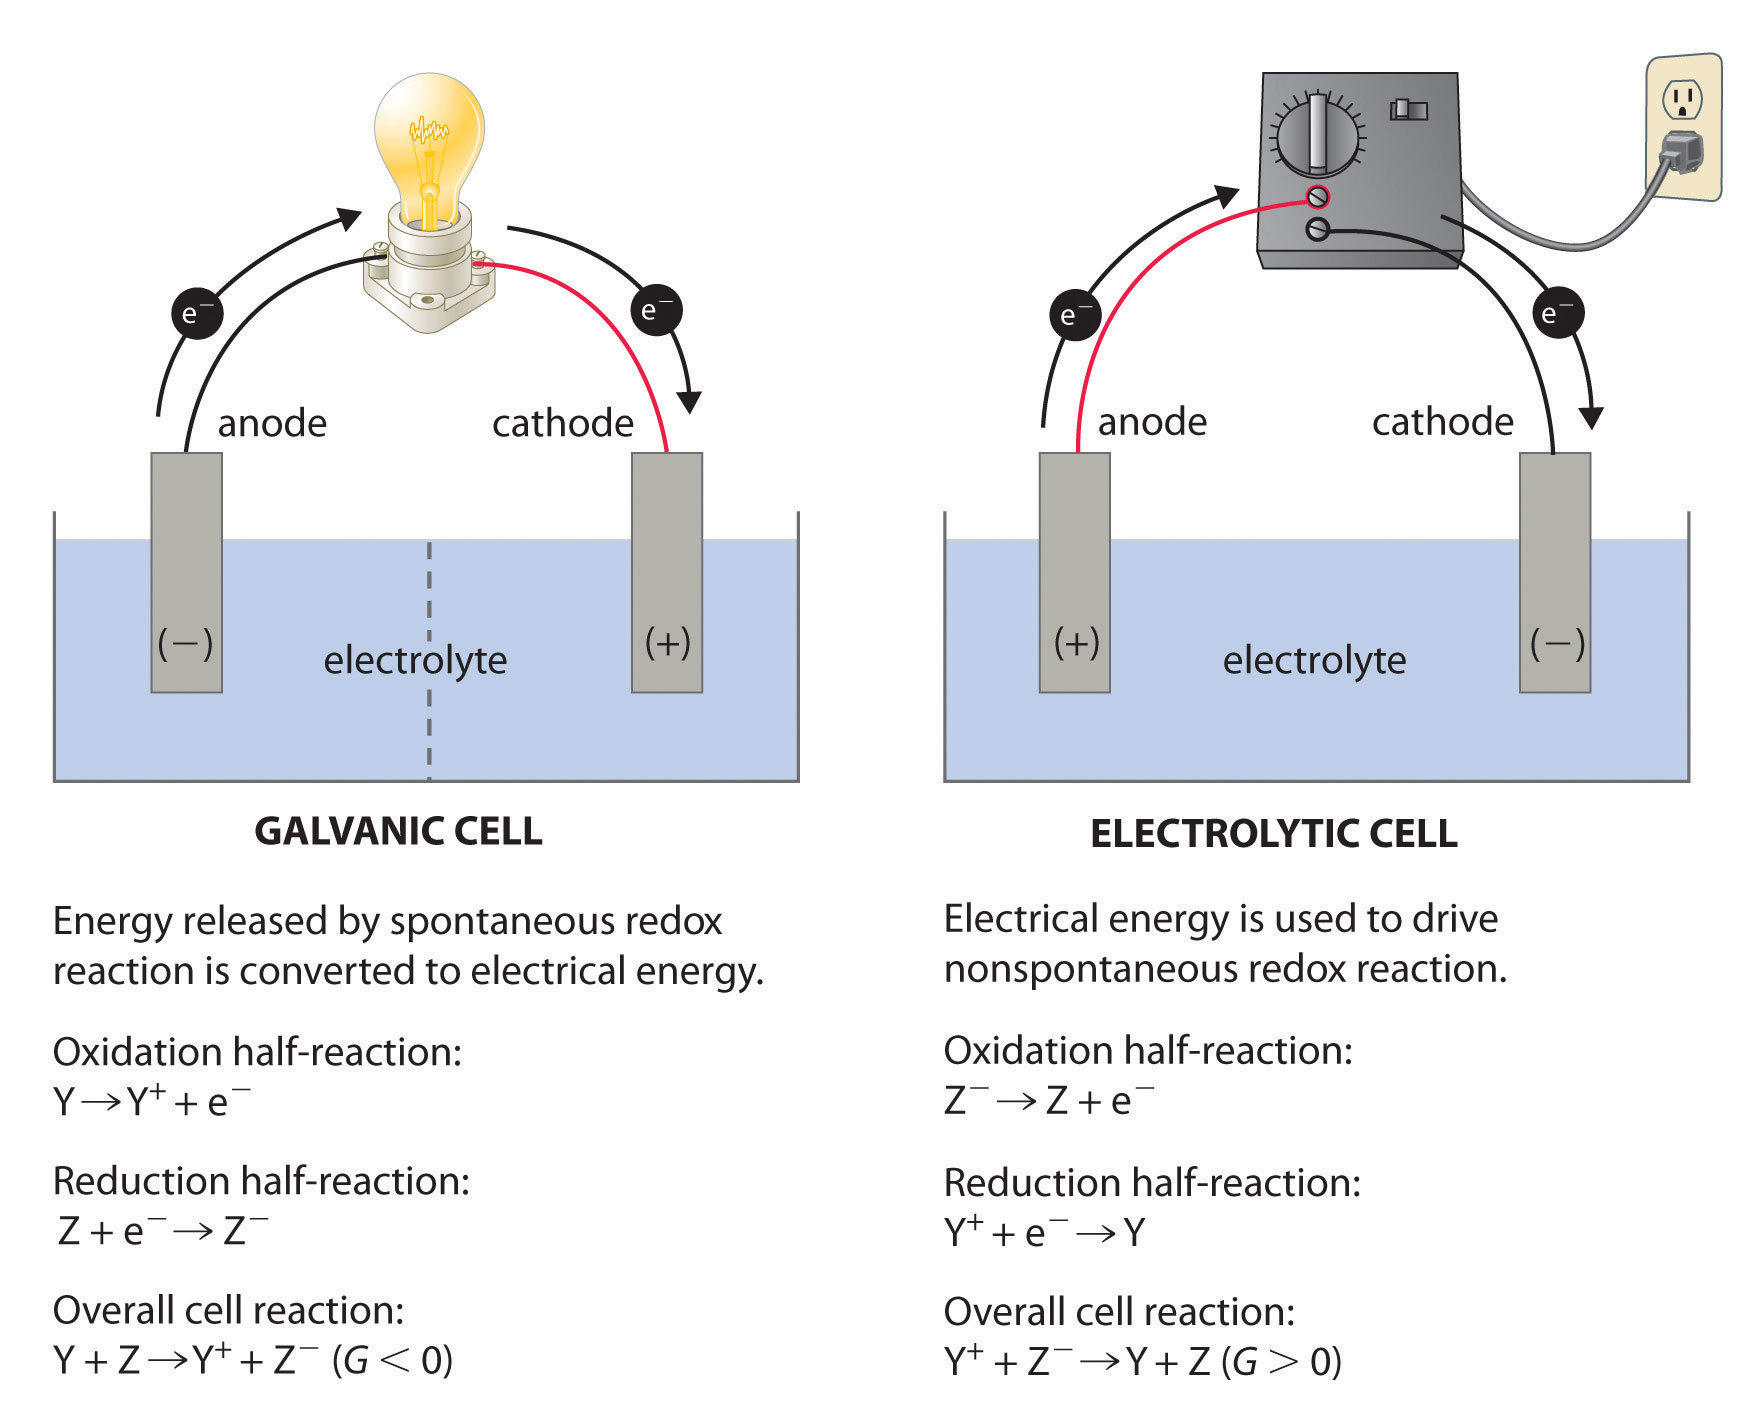 Electrochemistry Common Symbols Include A Cell Battery Switches Meters Power Galvanic Left Transforms The Energy Released By Spontaneous Redox Reaction Into Electrical That Can Be Used To Perform Work